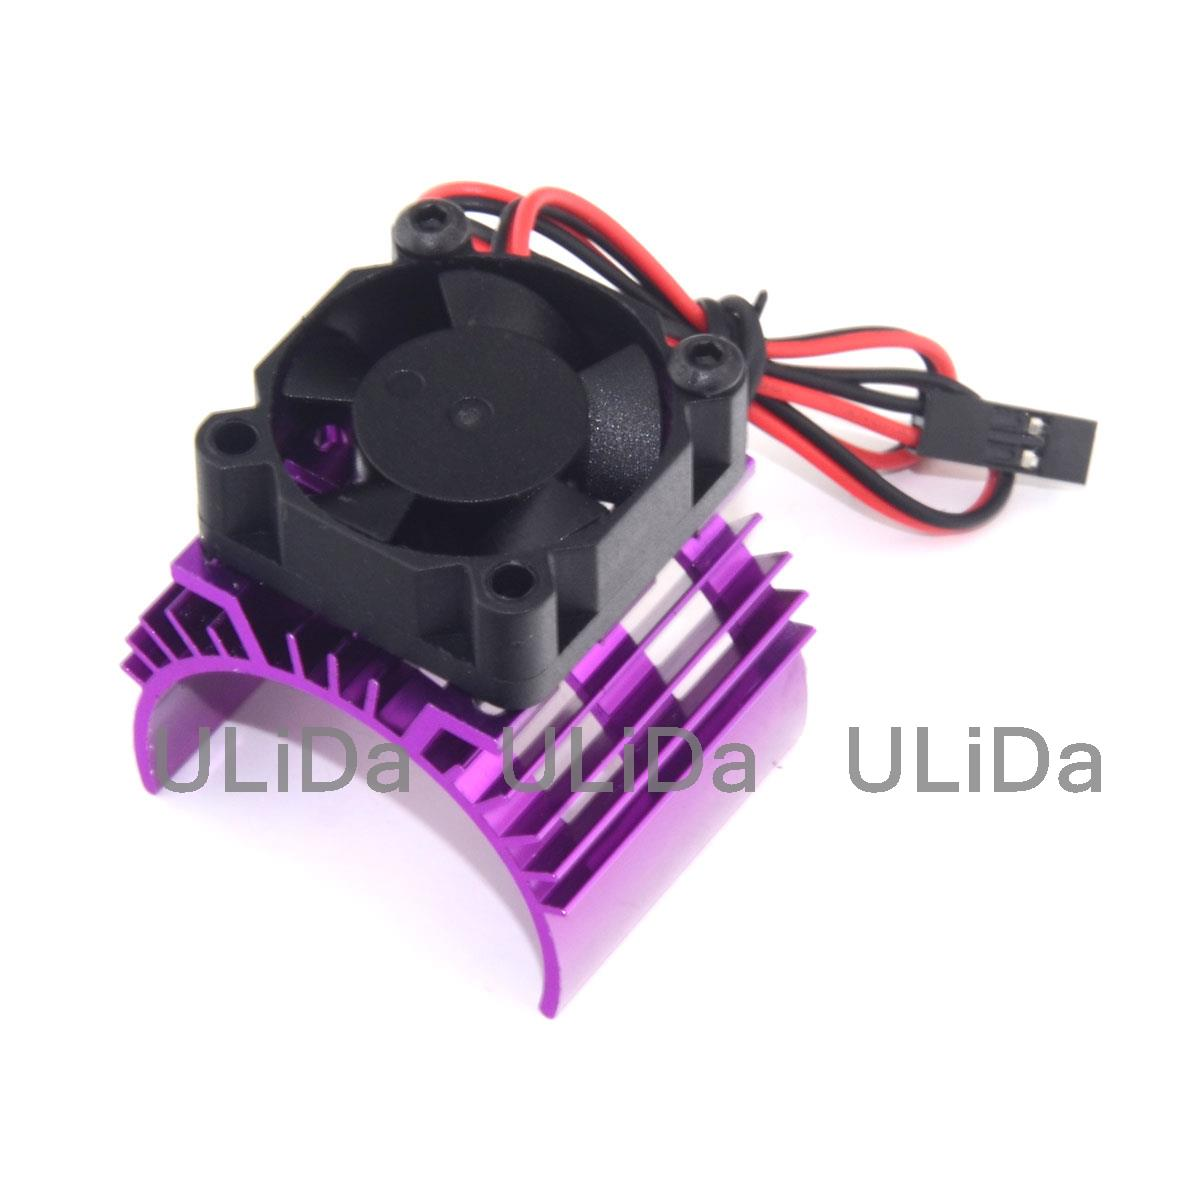 Hot On Sale RC Parts Electric Car <font><b>Motor</b></font> Heatsink Cover + Cooling <font><b>Fan</b></font> for 1:10 HSP RC Car <font><b>540</b></font> 550 3650 Size <font><b>Motor</b></font> Heat Sink image